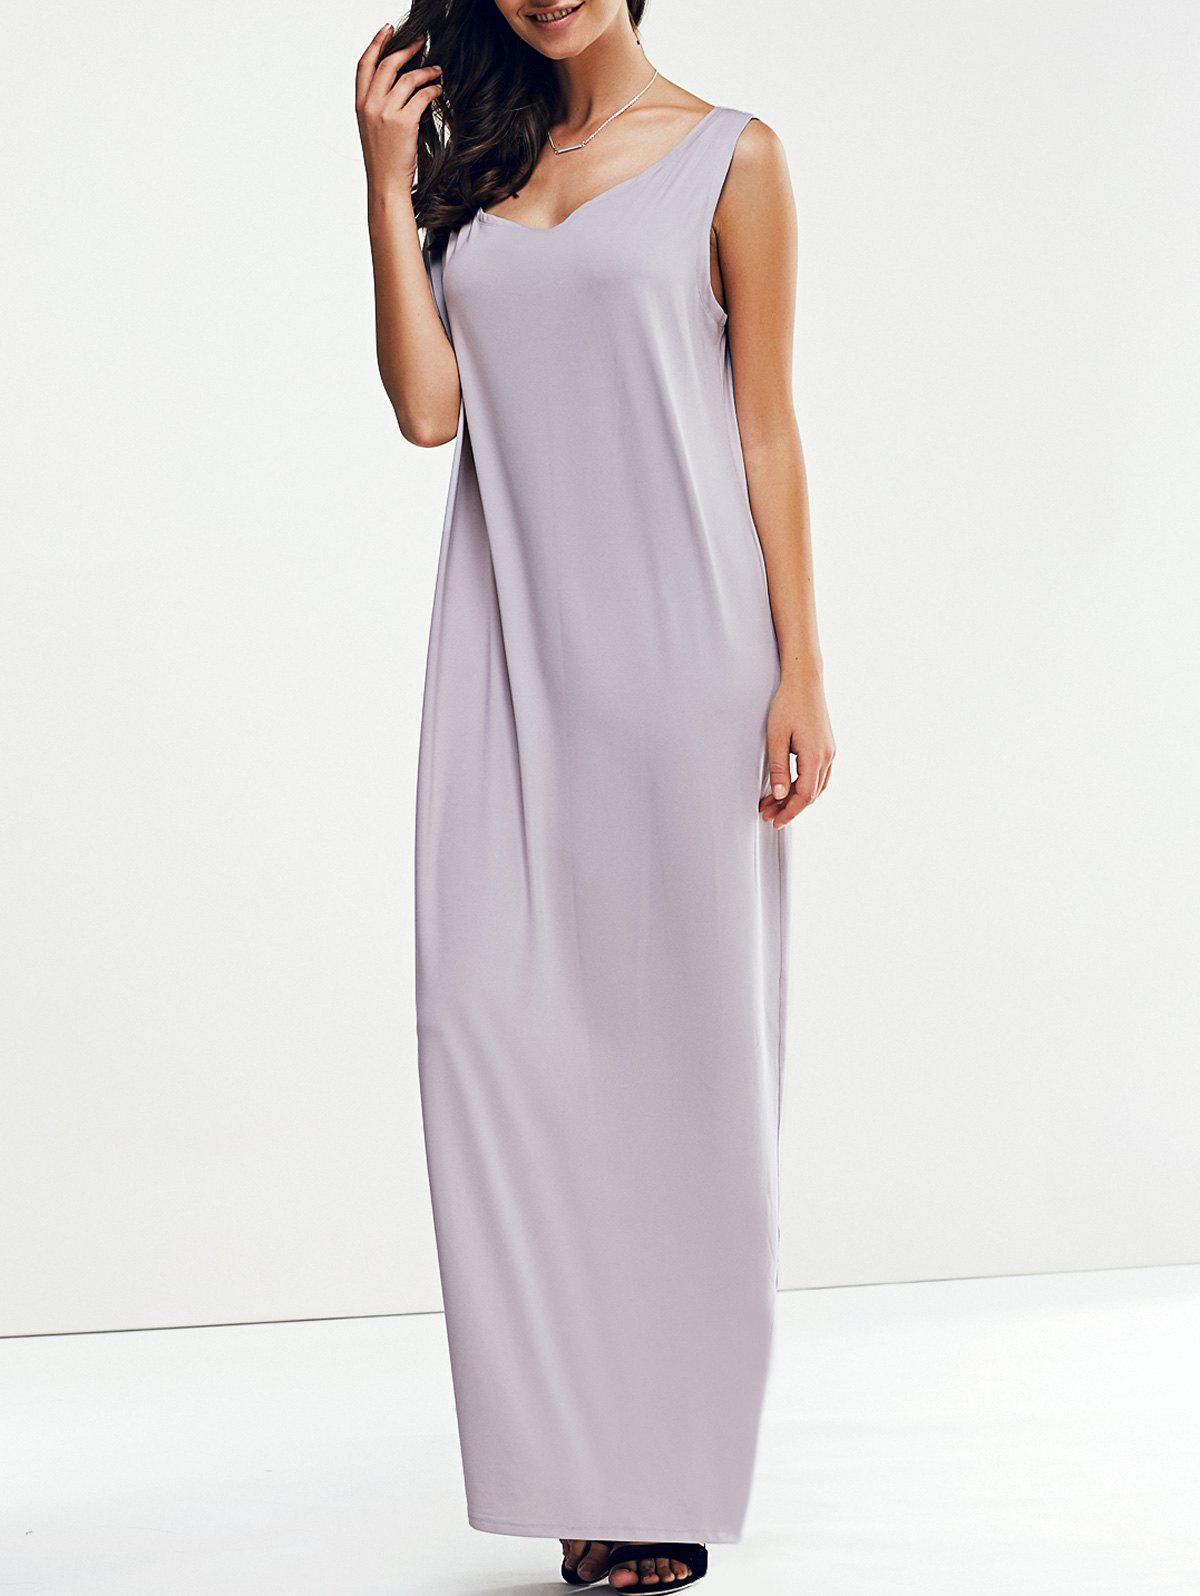 Casual Women's Skew Collar 3/4 Sleeve Straight Solid Color Maxi Dress